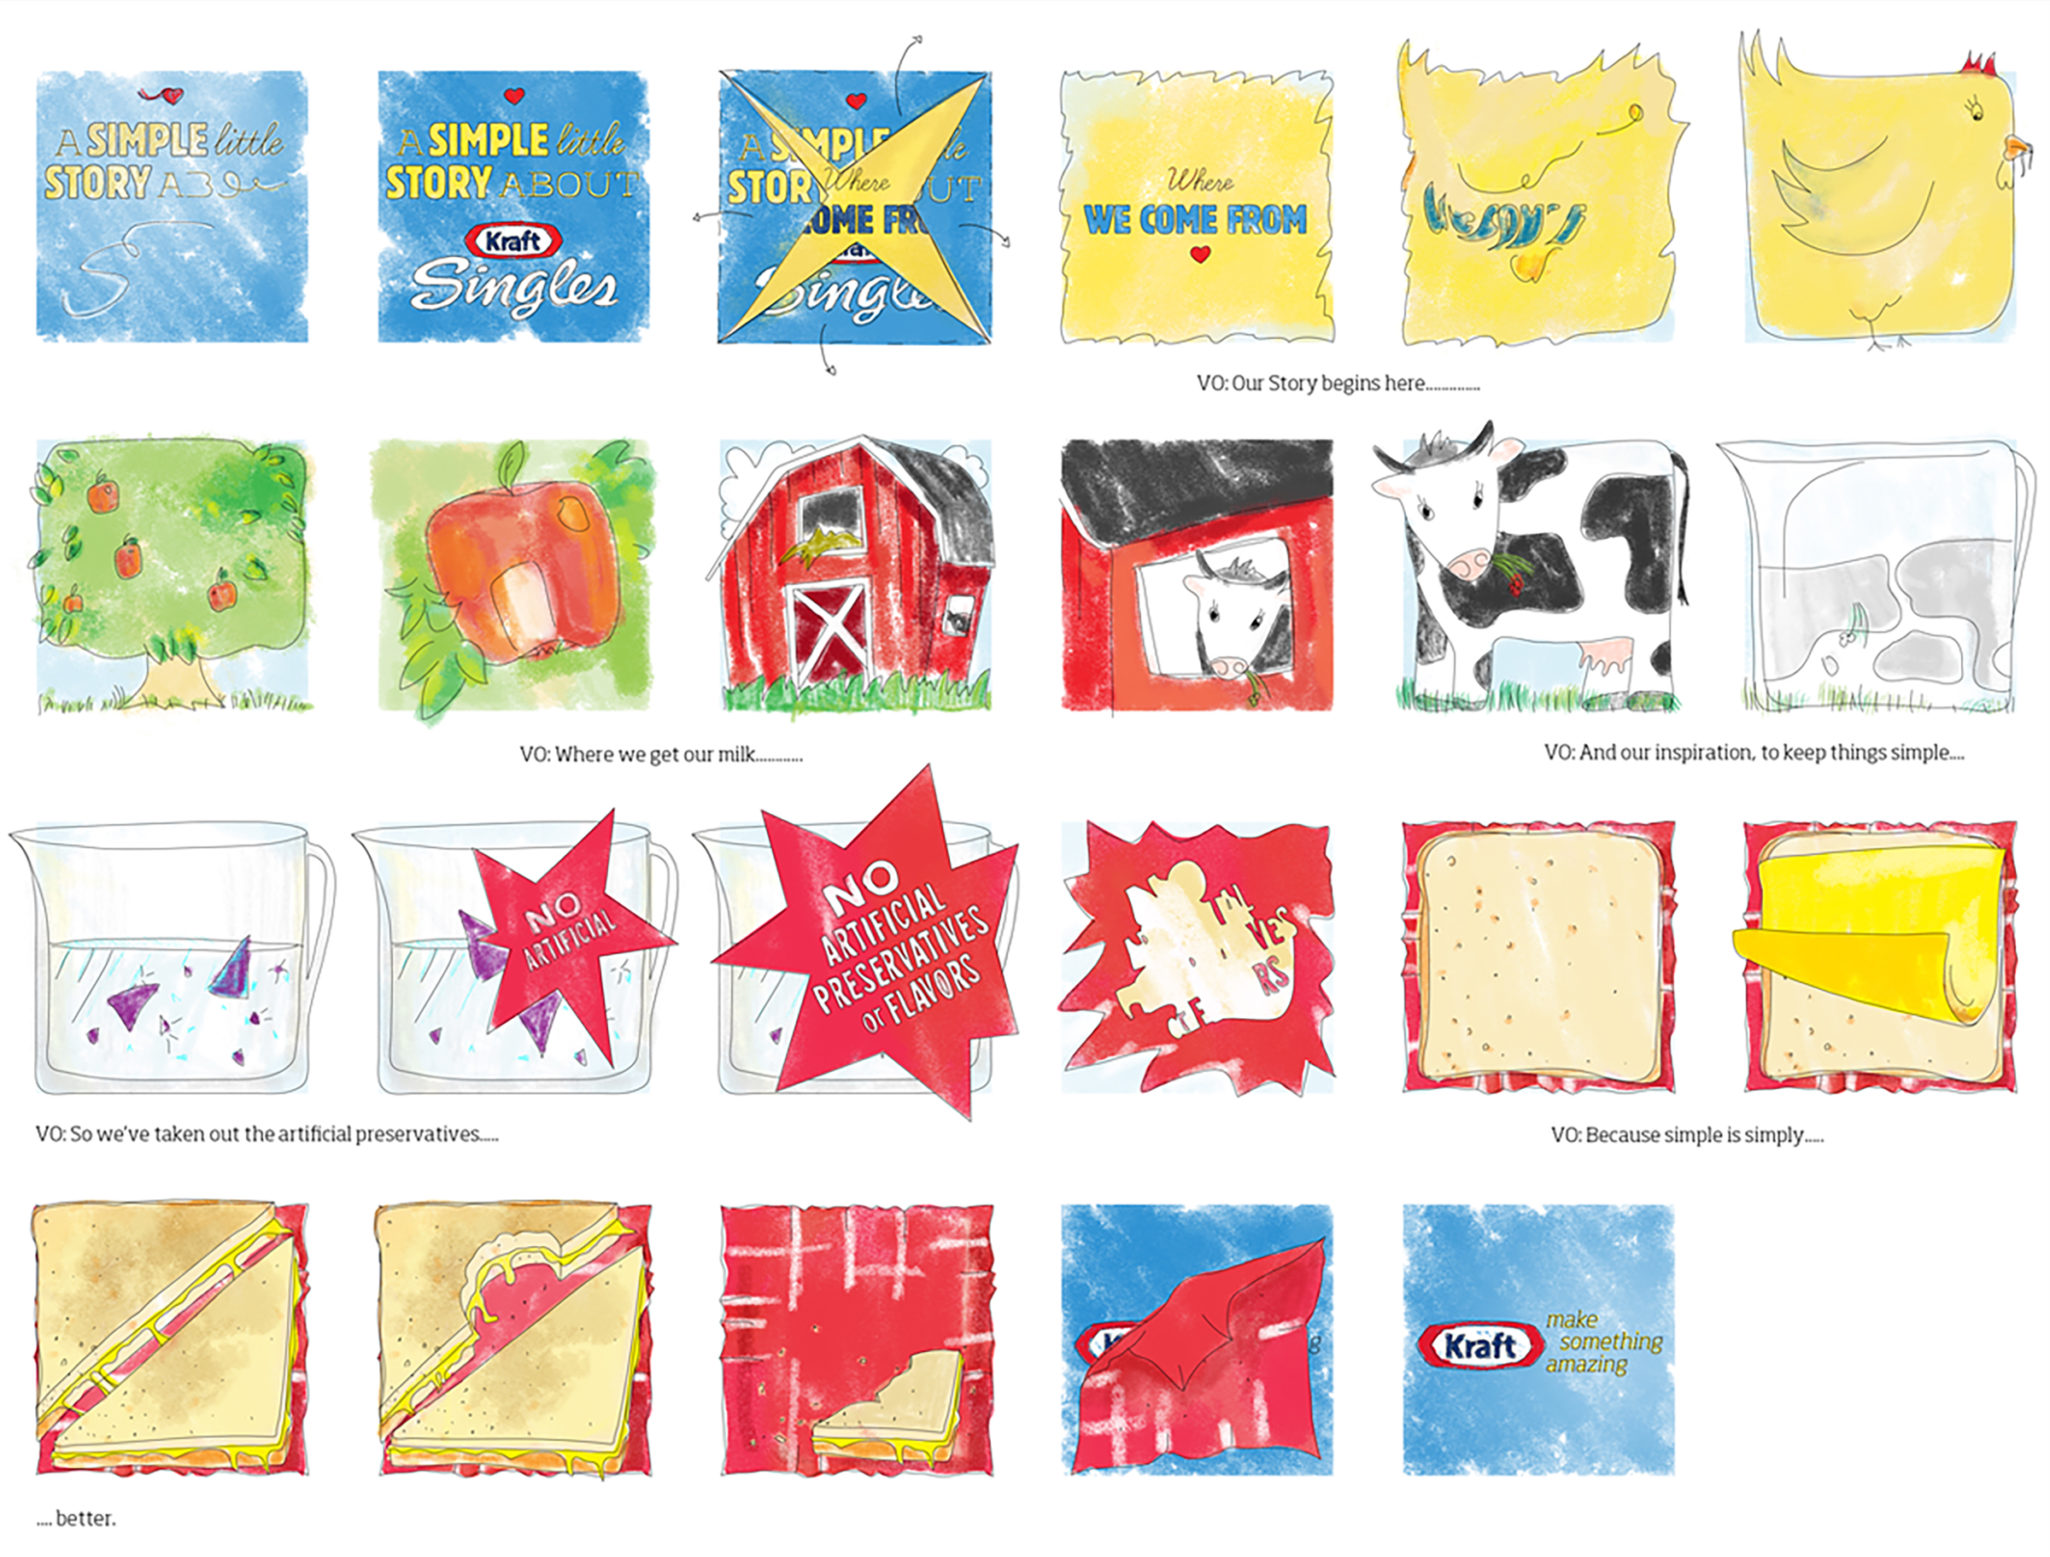 Storyboard for animated commercial: Kraft Singles